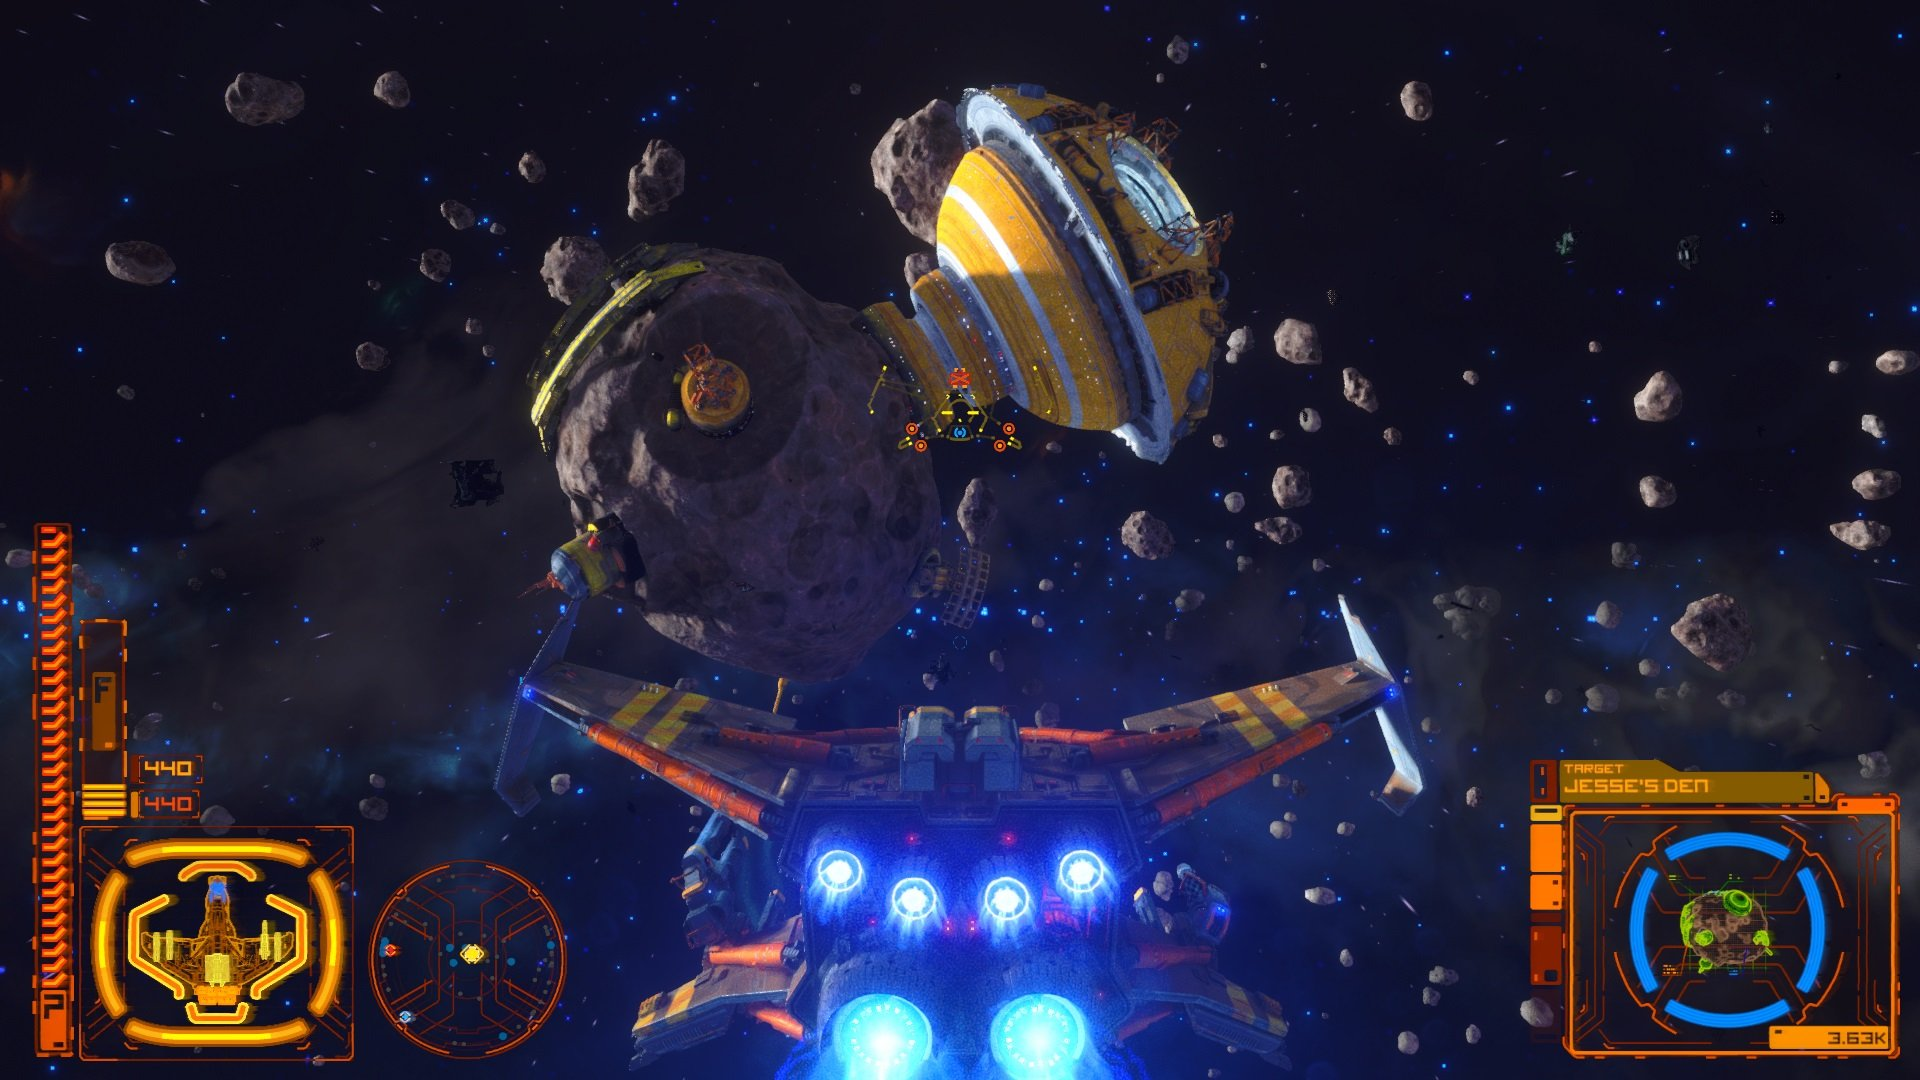 Rebel Galaxy Outlaw: Well, lookie here! For once a space